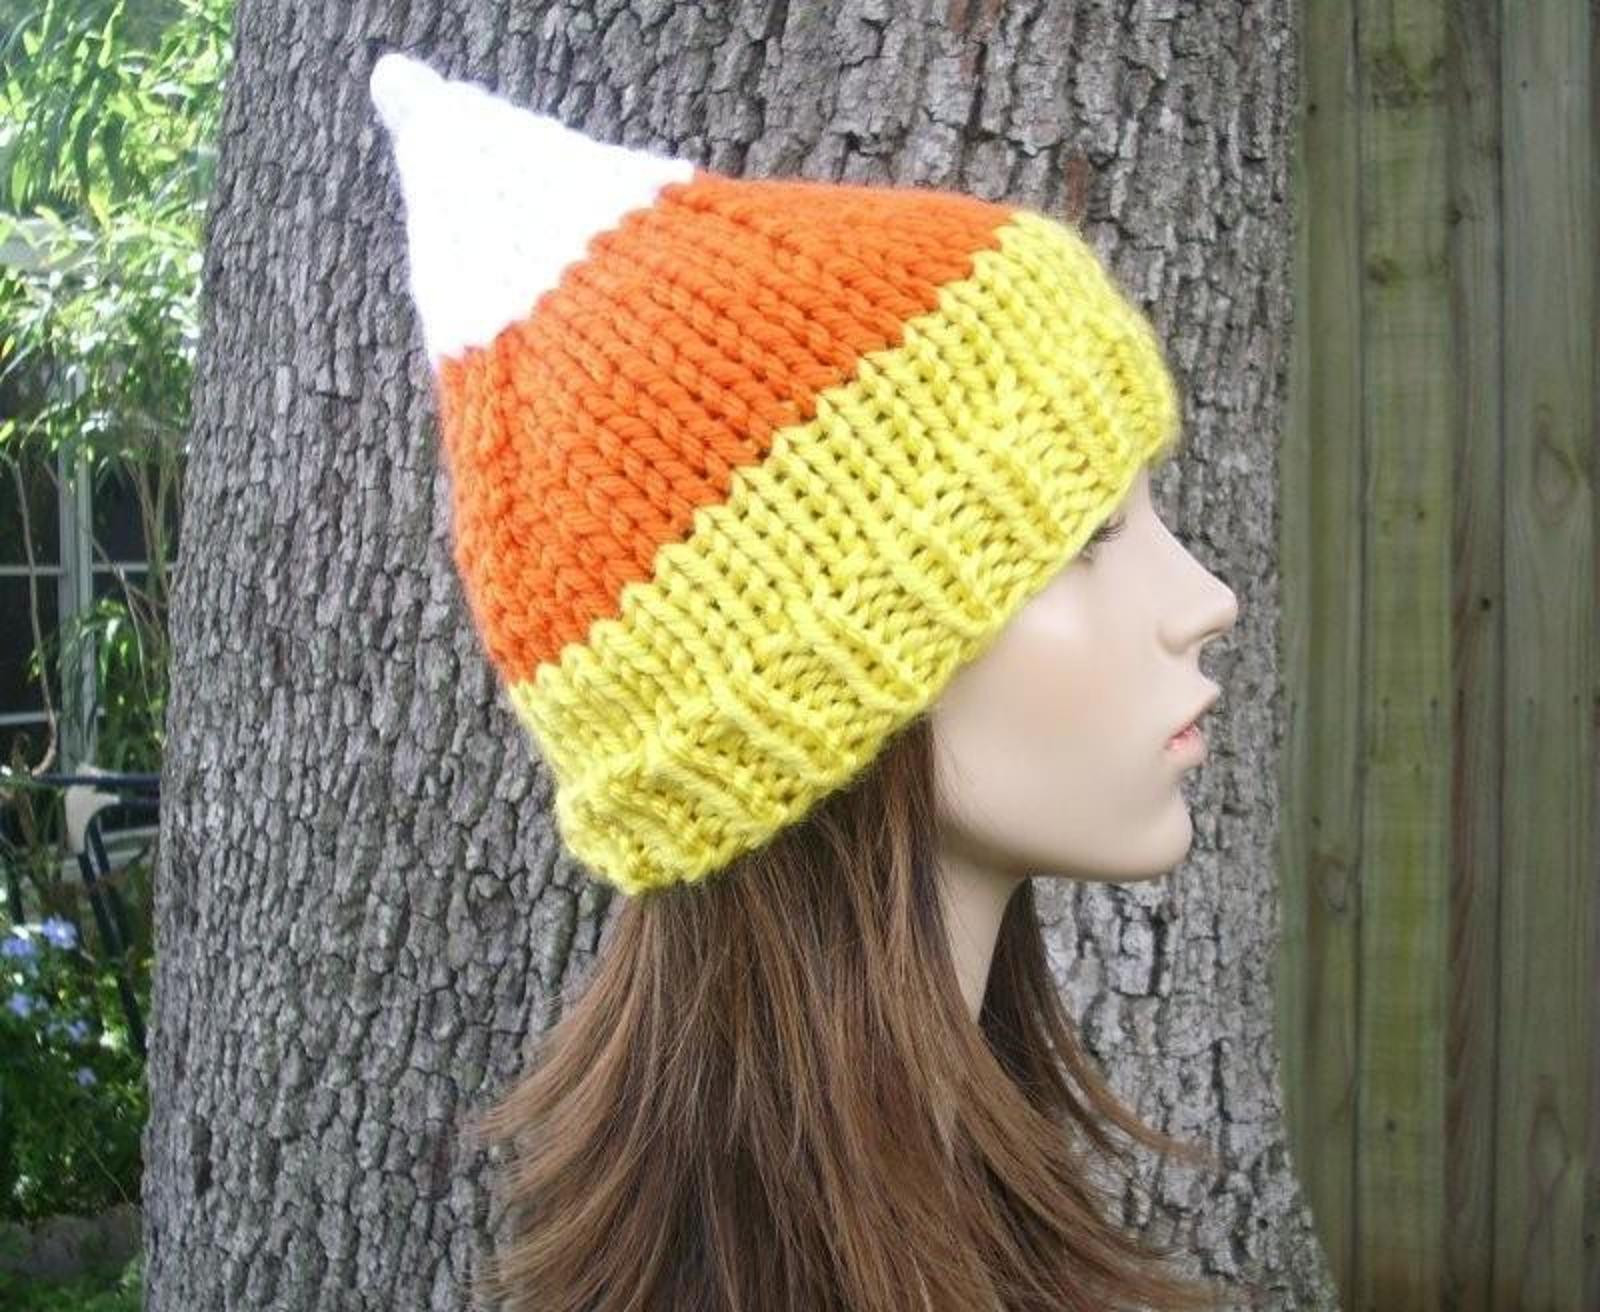 Elegant Creepy & Cute Halloween Knitting Patterns Candy Corn Hat Of Incredible 42 Pictures Candy Corn Hat